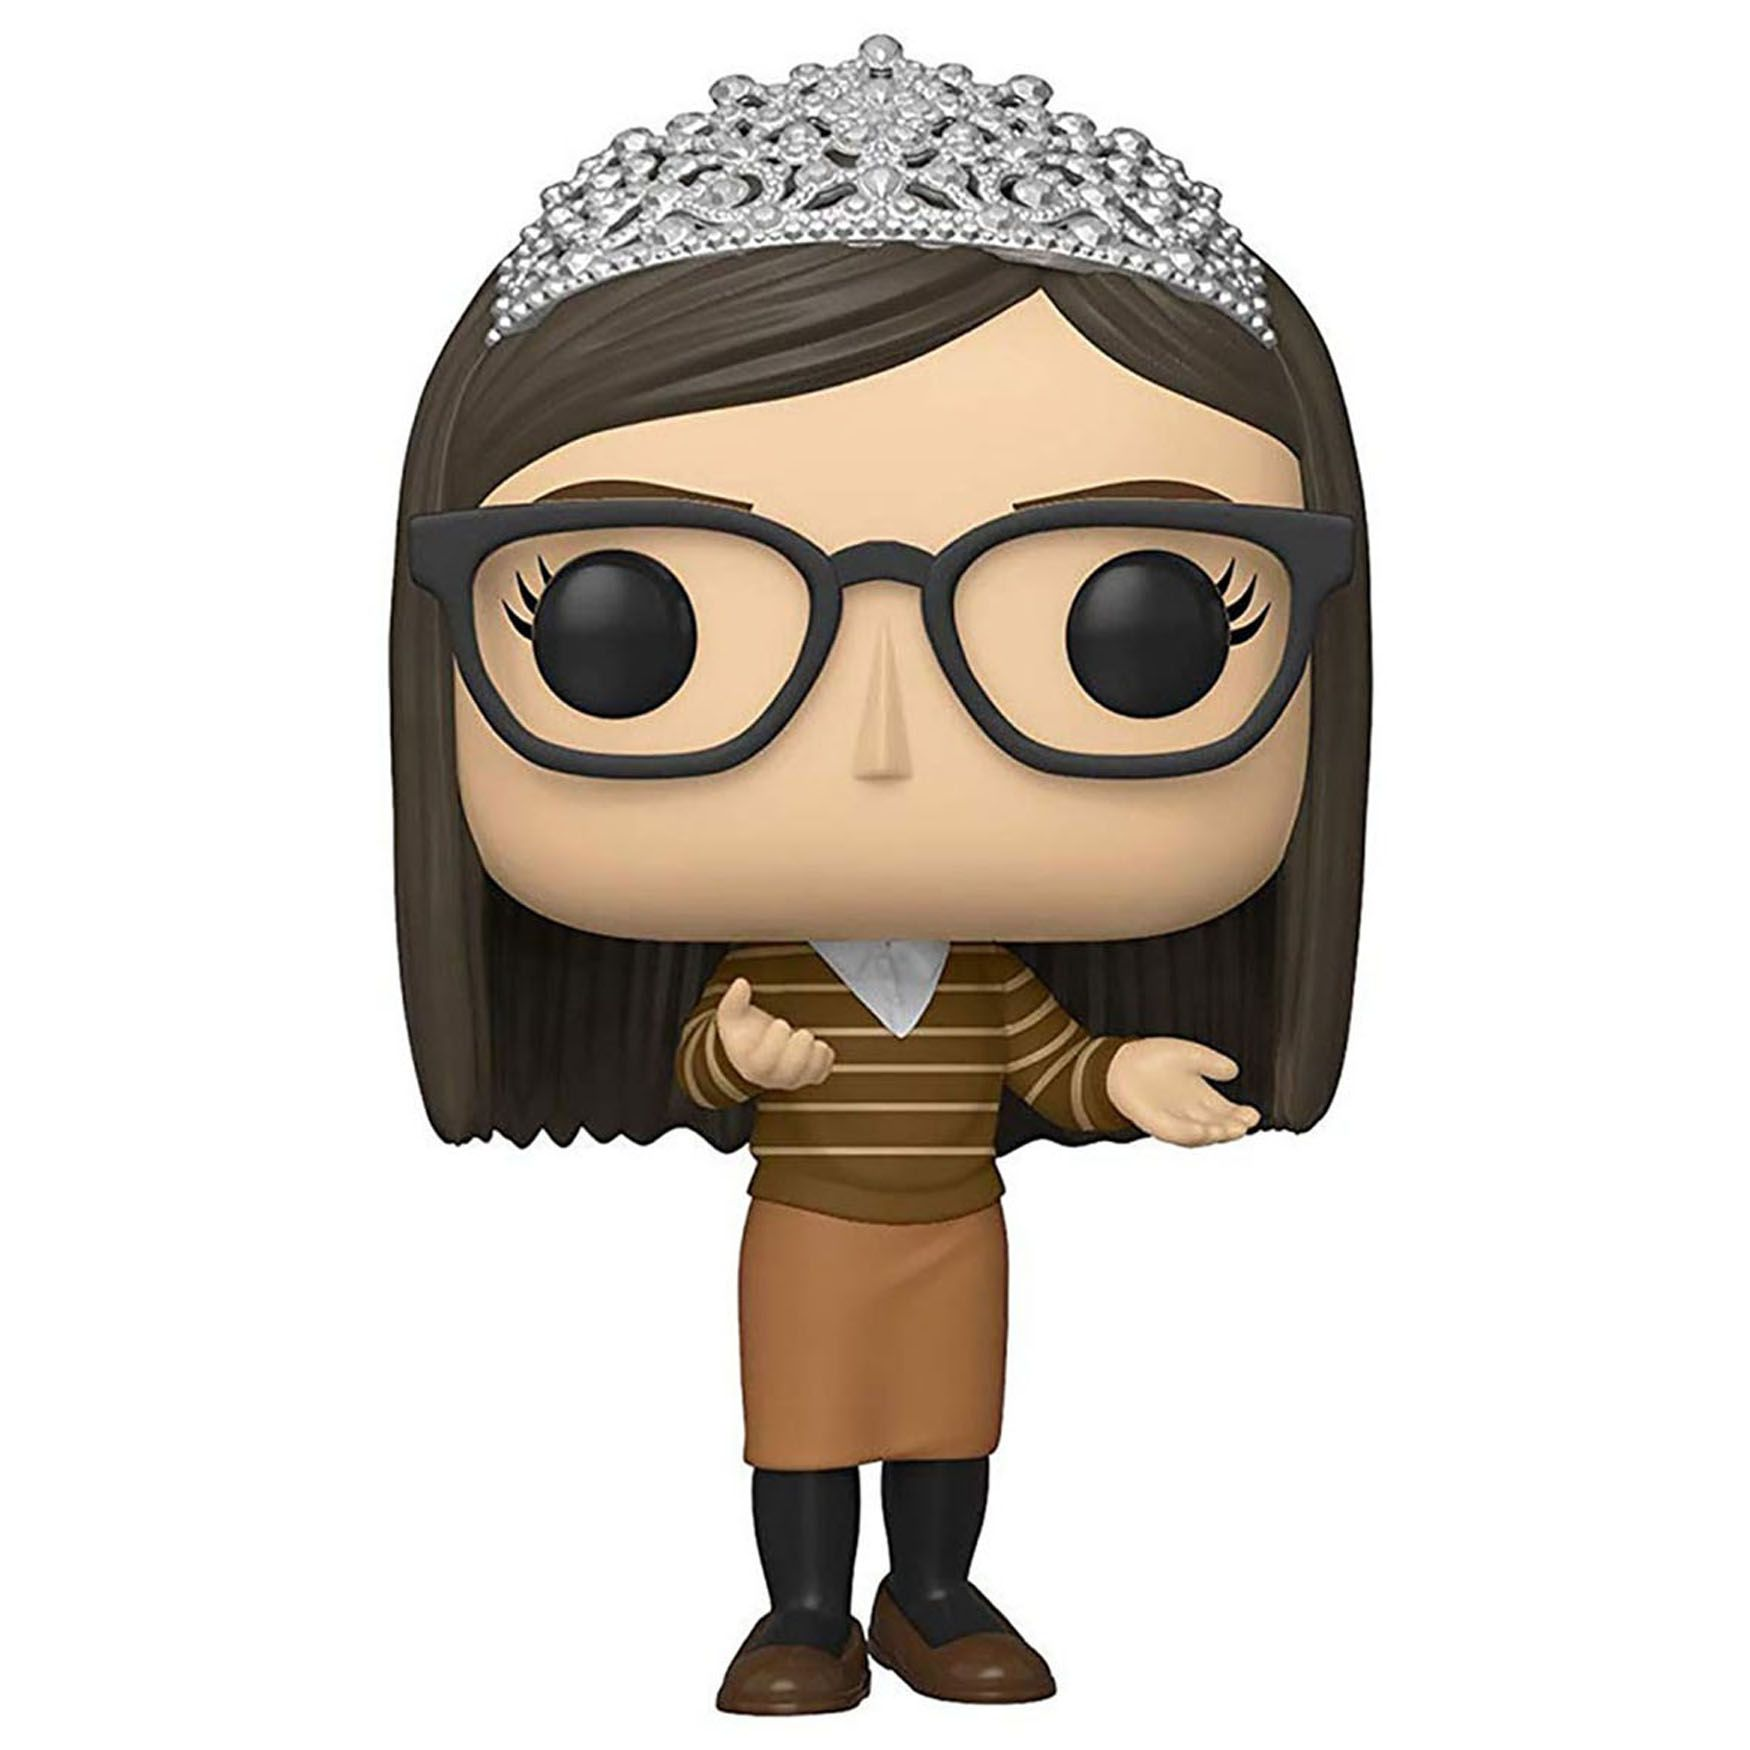 Funko Pop Amy Farrah Fowler The Big Bang Theory Boneco Colecionável Original